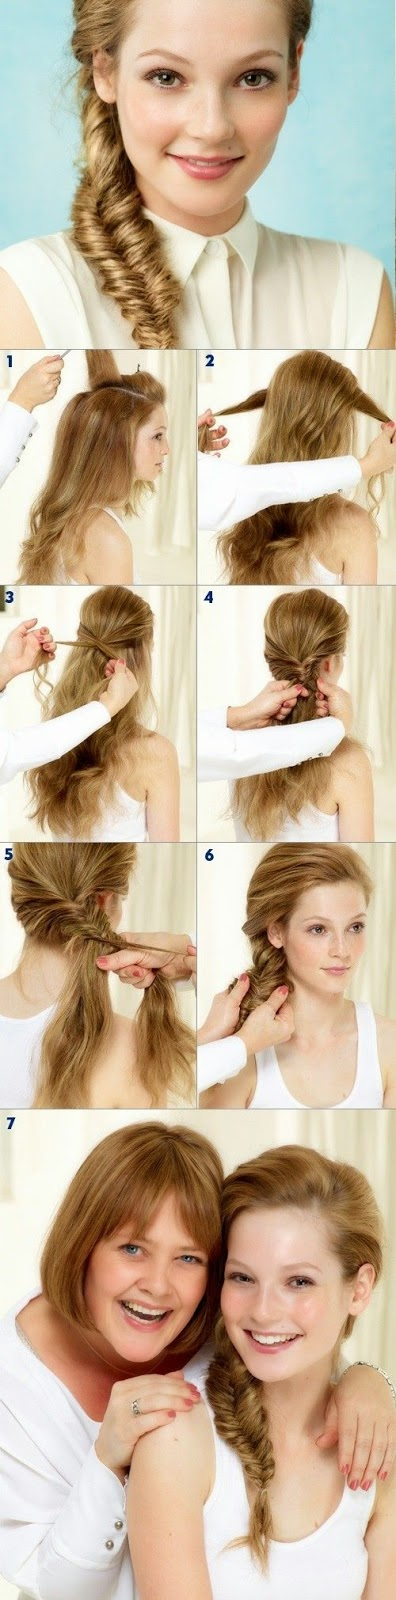 Cara Menata Rambut Panjan Ala Tight Side Braid